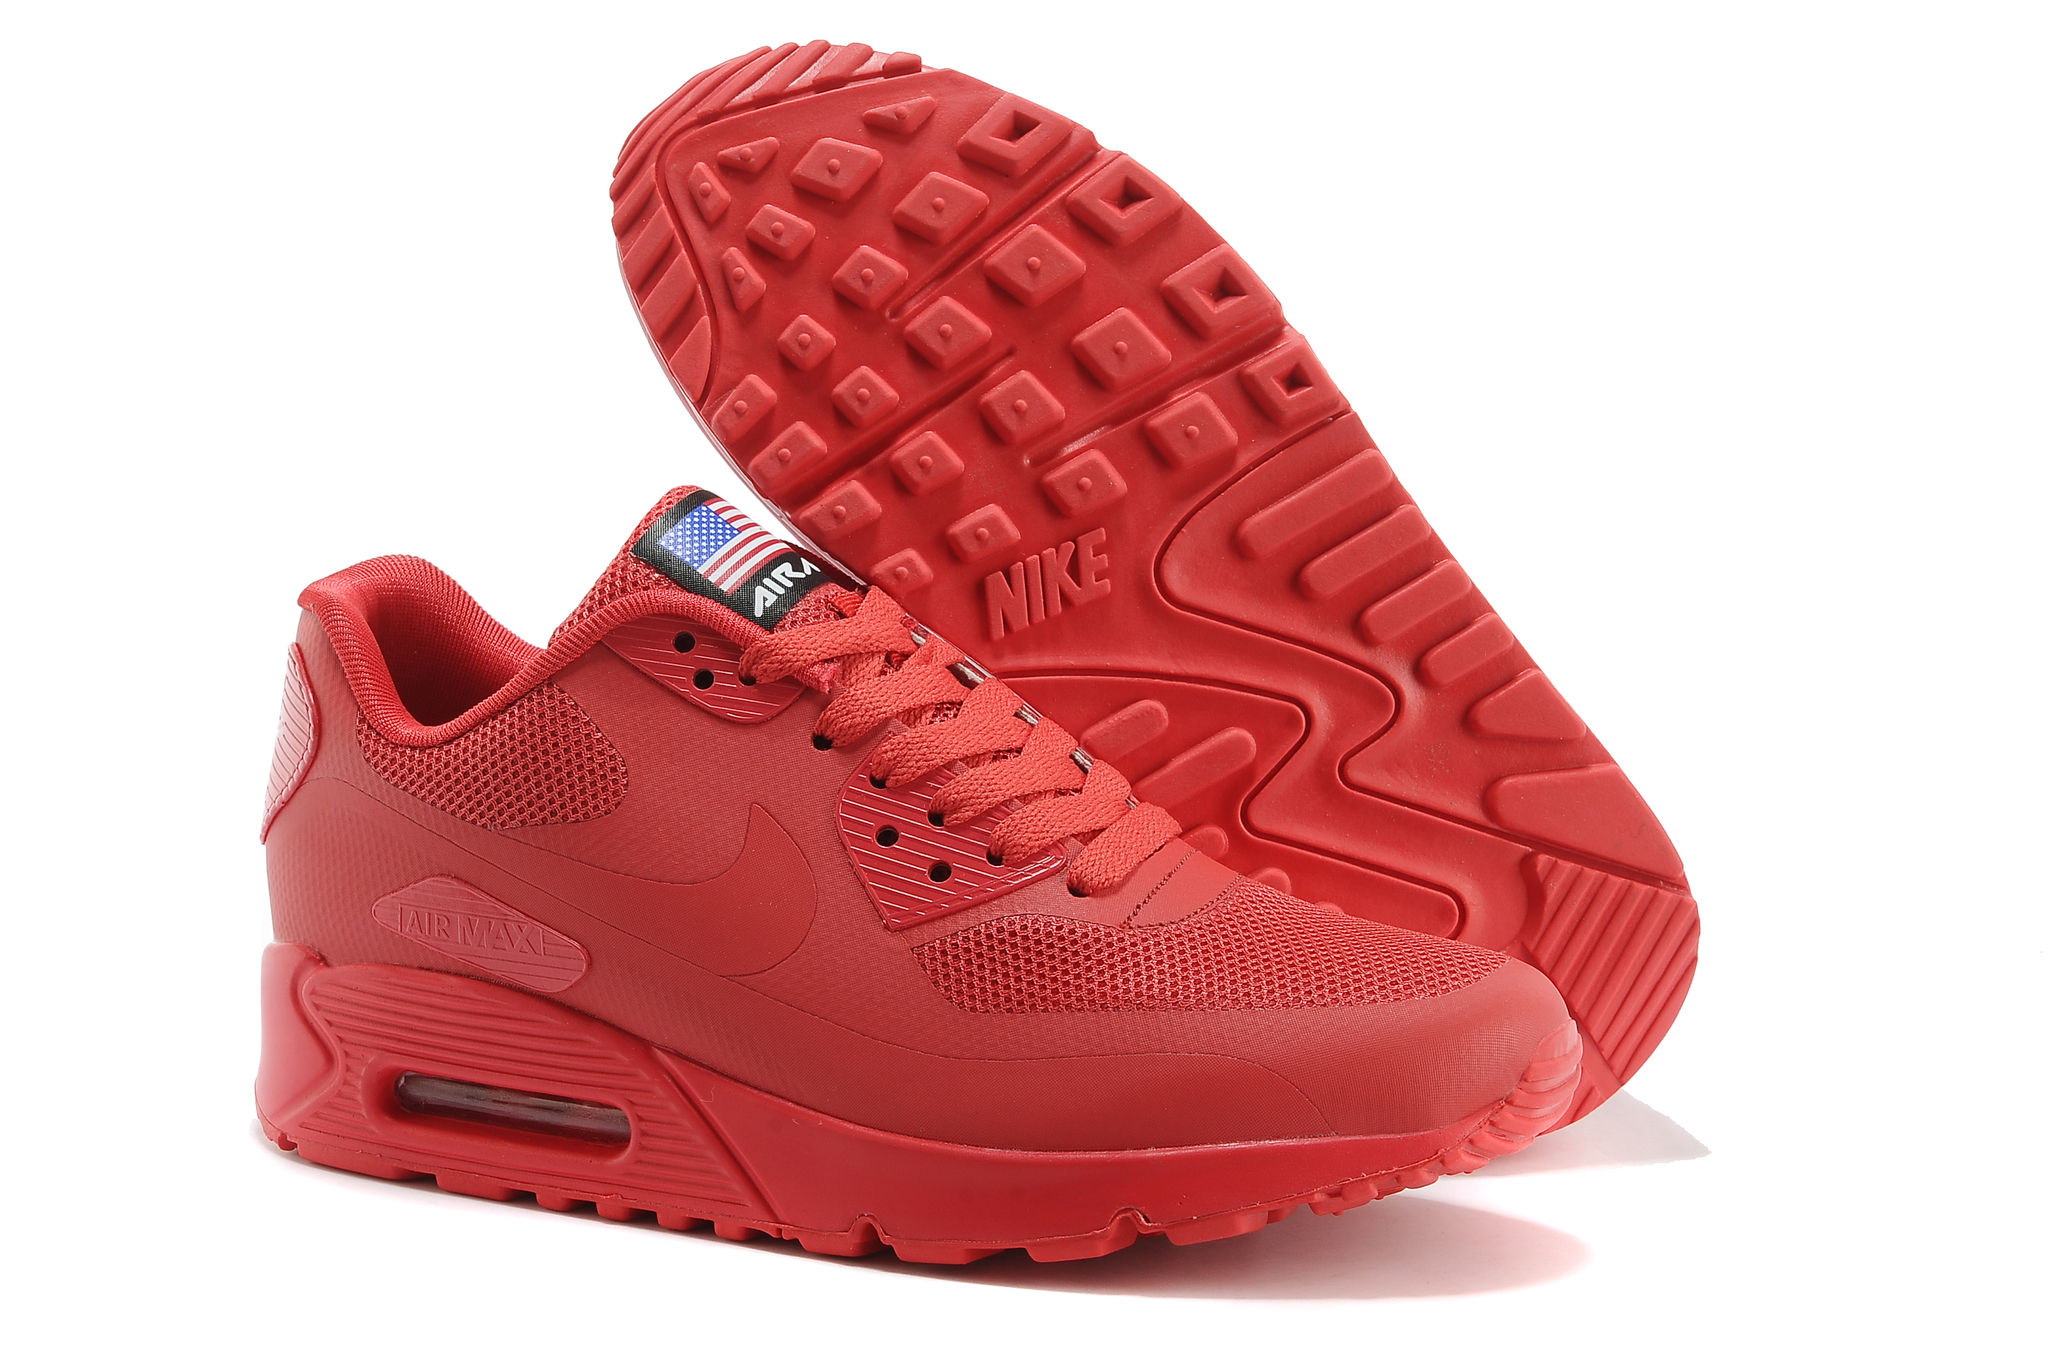 NIke_Air_Max_90_Hyperfuse_Independence_Day_Red_Krossoffki.ru.jpg